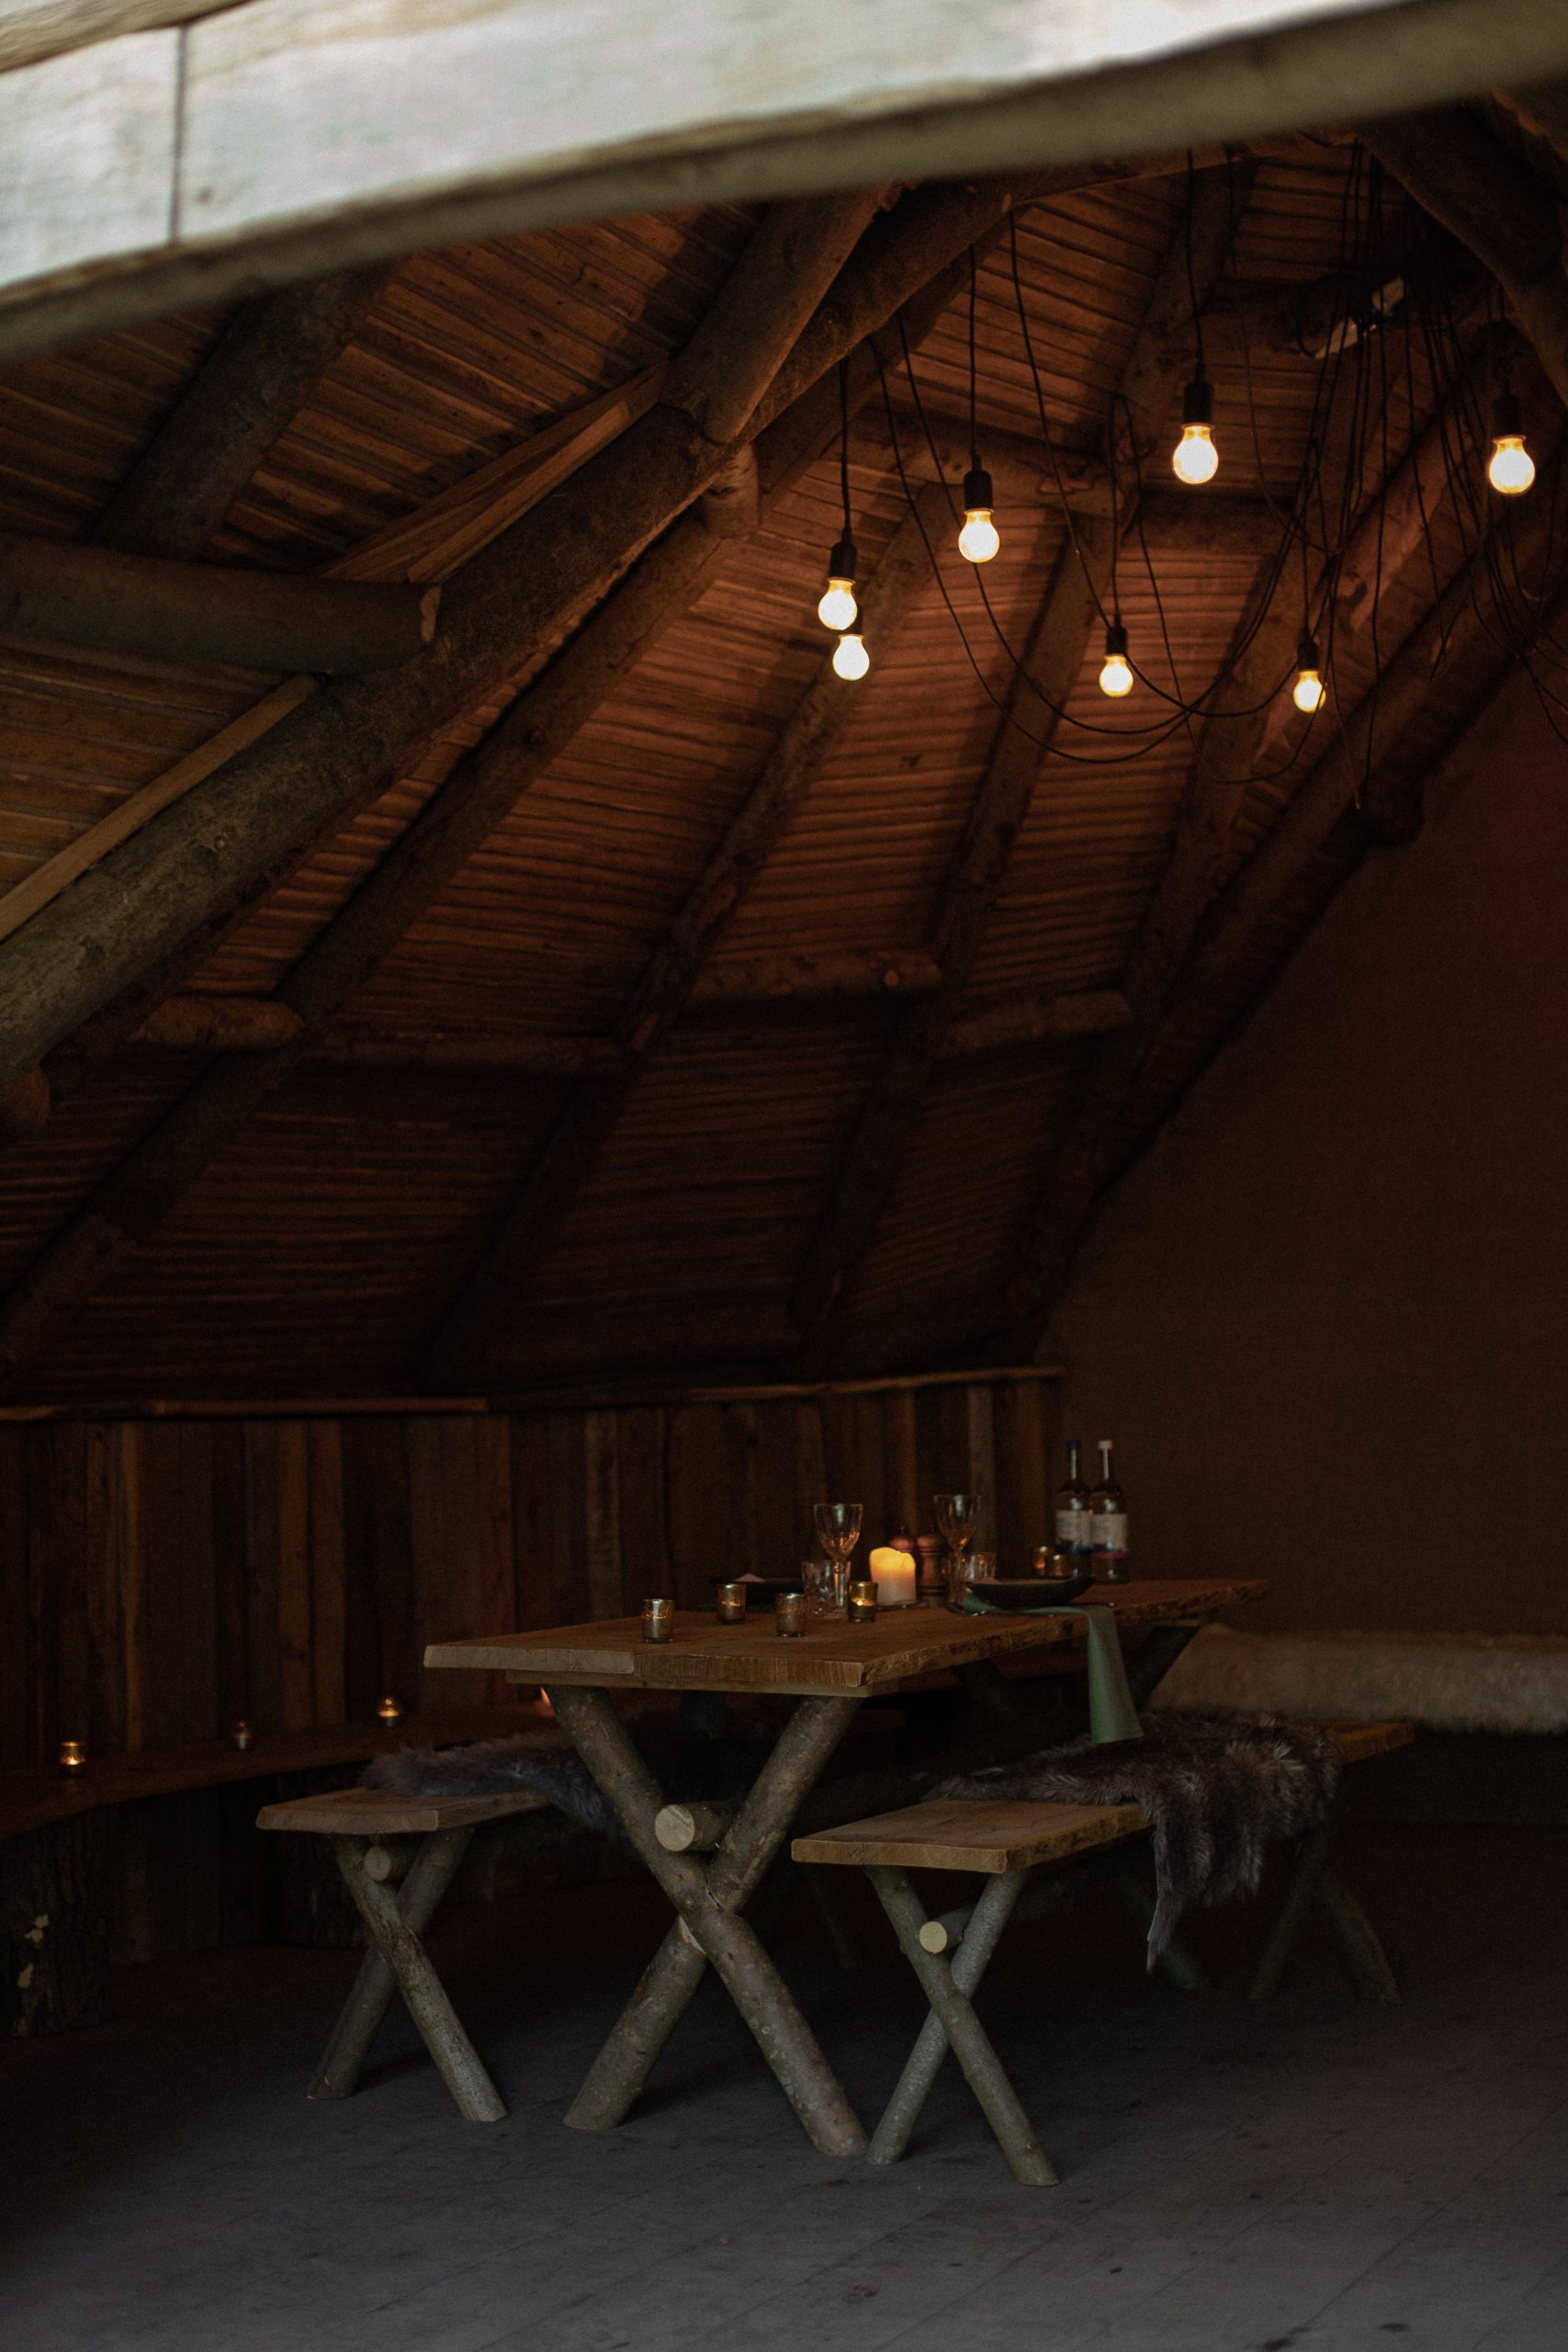 Inside one of the wooden cabins, with bench style seating, fur throws and glowing pendant lights